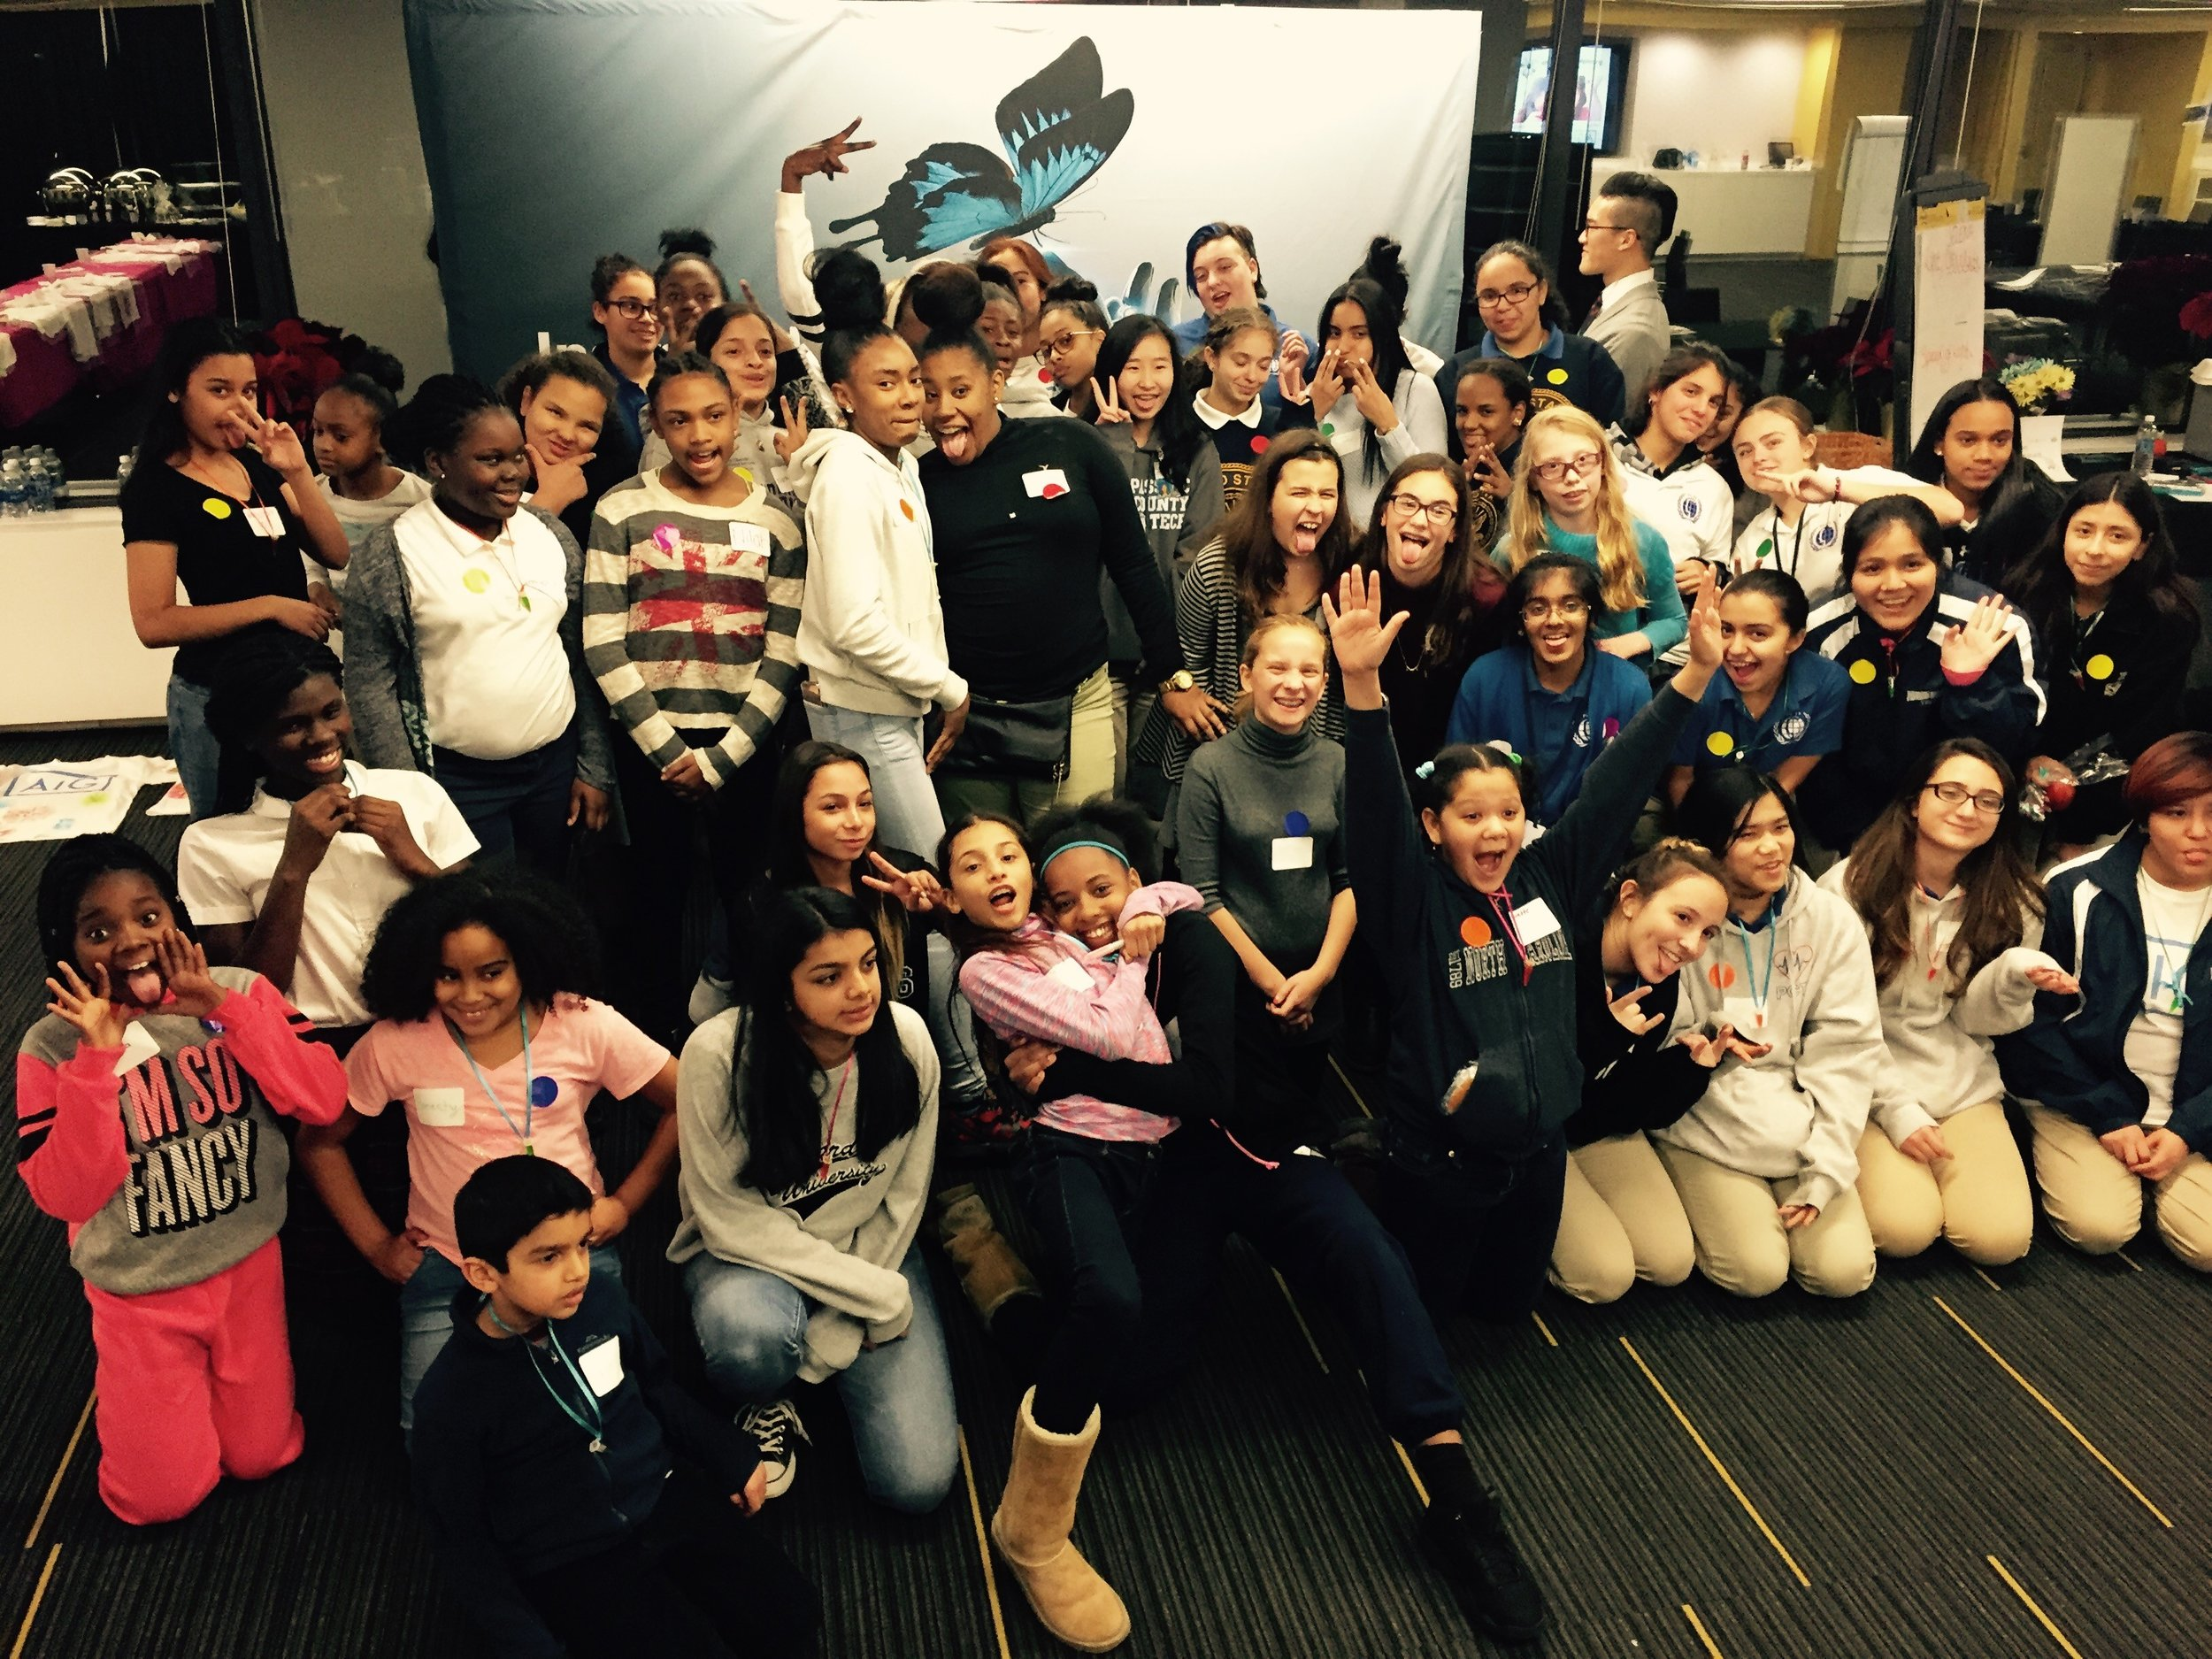 g4g @work with AIG in NYC Dec. 2016    The g4g team and the New York Chapter of AIG's Global Women in Technology (GWIT) hosted the first g4g@work event at AIG's NY headquarters for 50 girls.